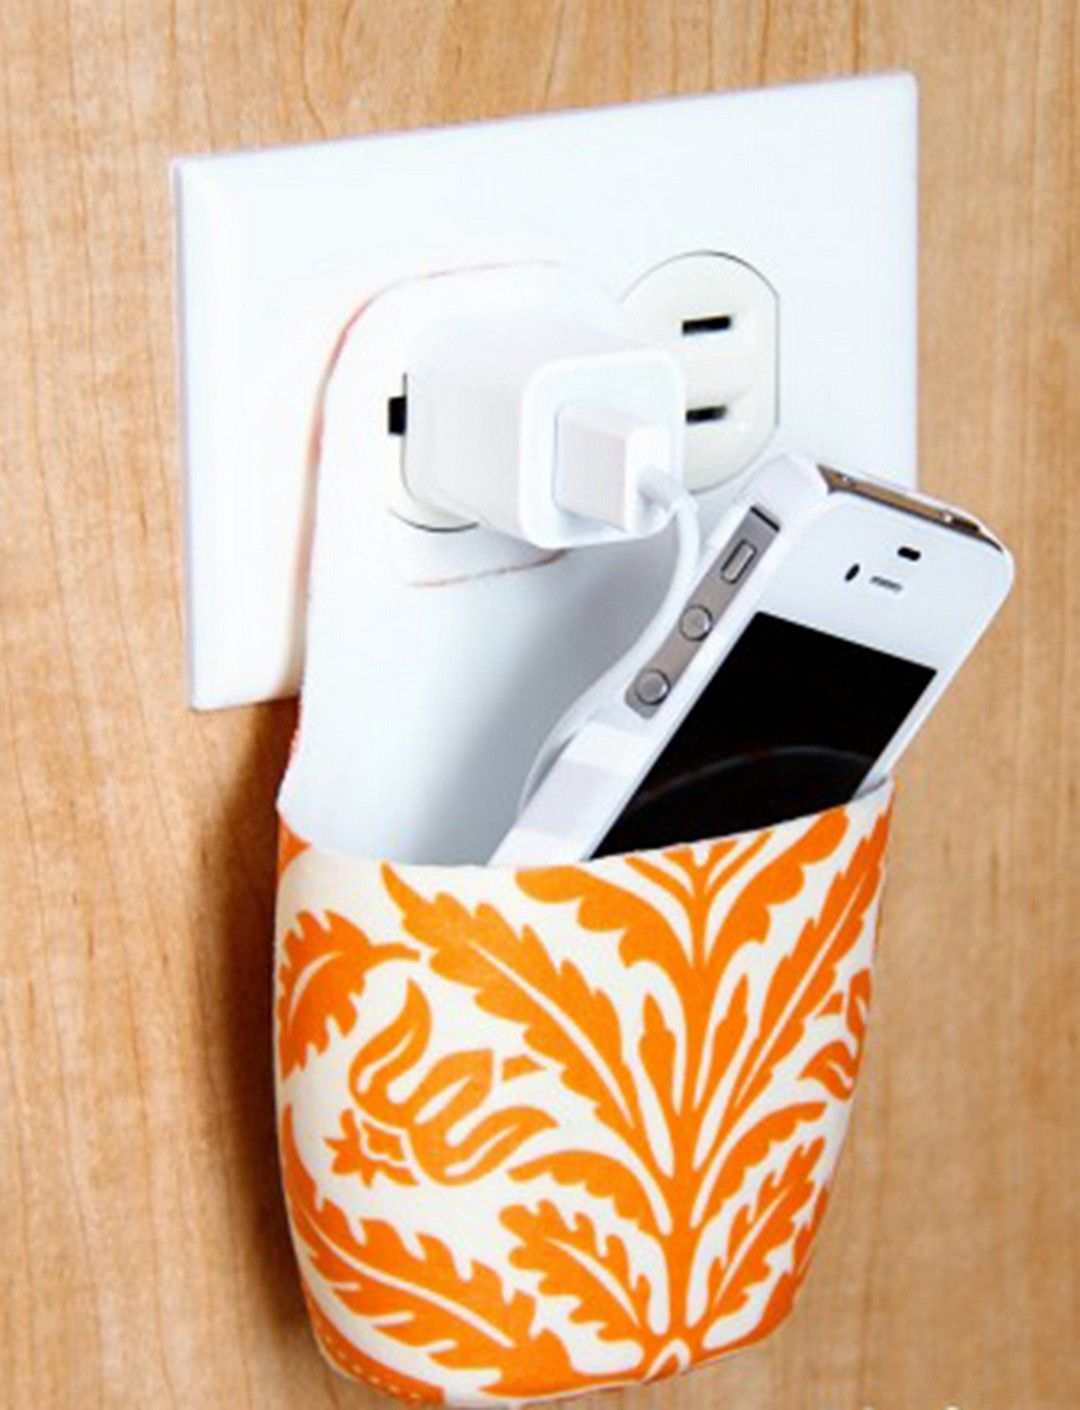 Cool Diy Projects 99 Incredible Diy Projects For Your Dorm Room Dorm Dorm Room